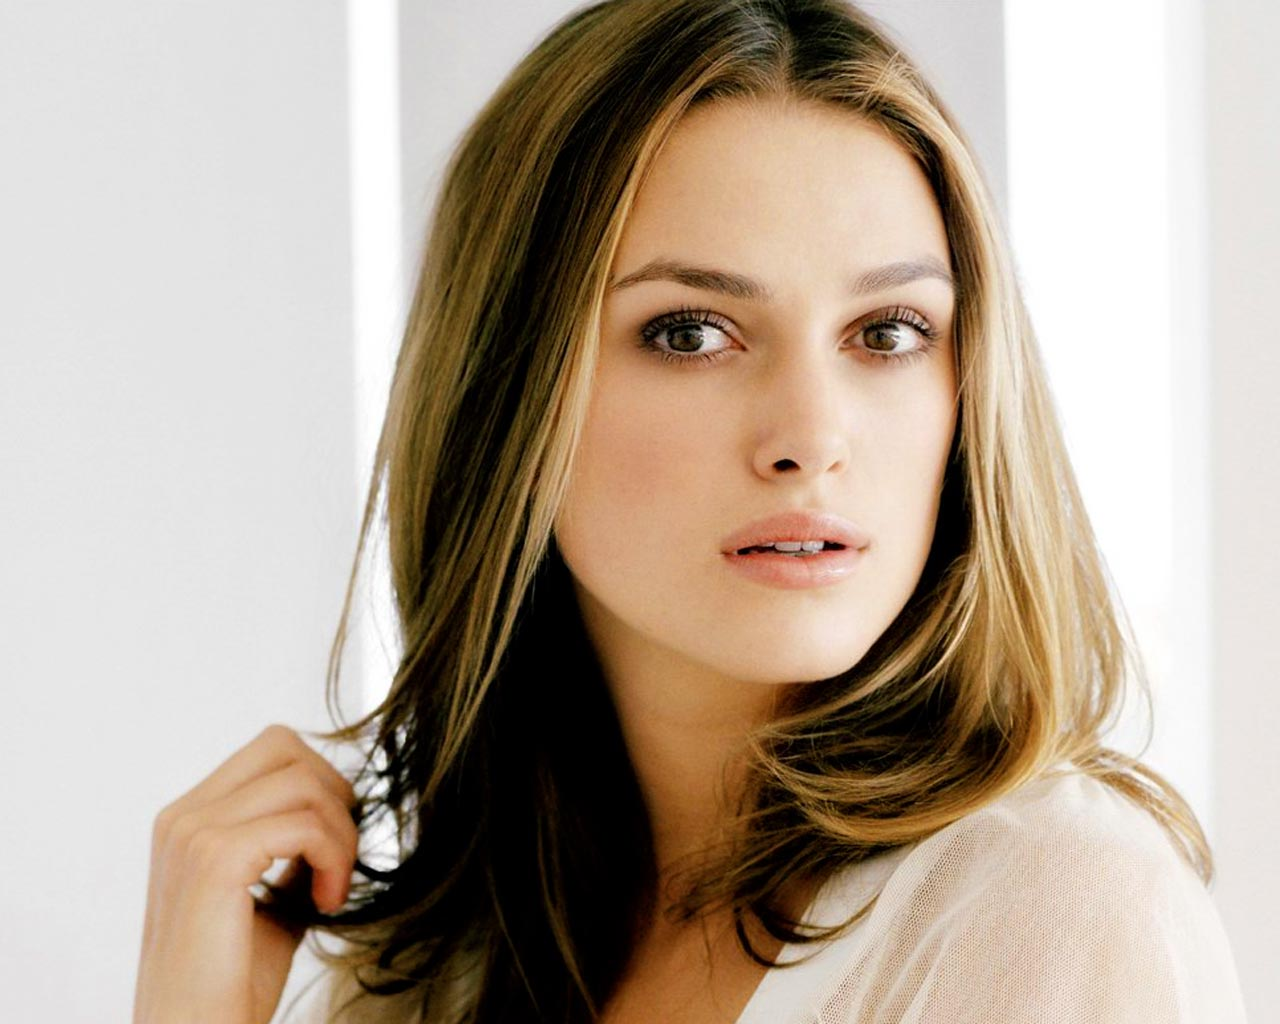 keira knightley6 You know,sometimes I wonder if Kiara Knightly is a nude model. .